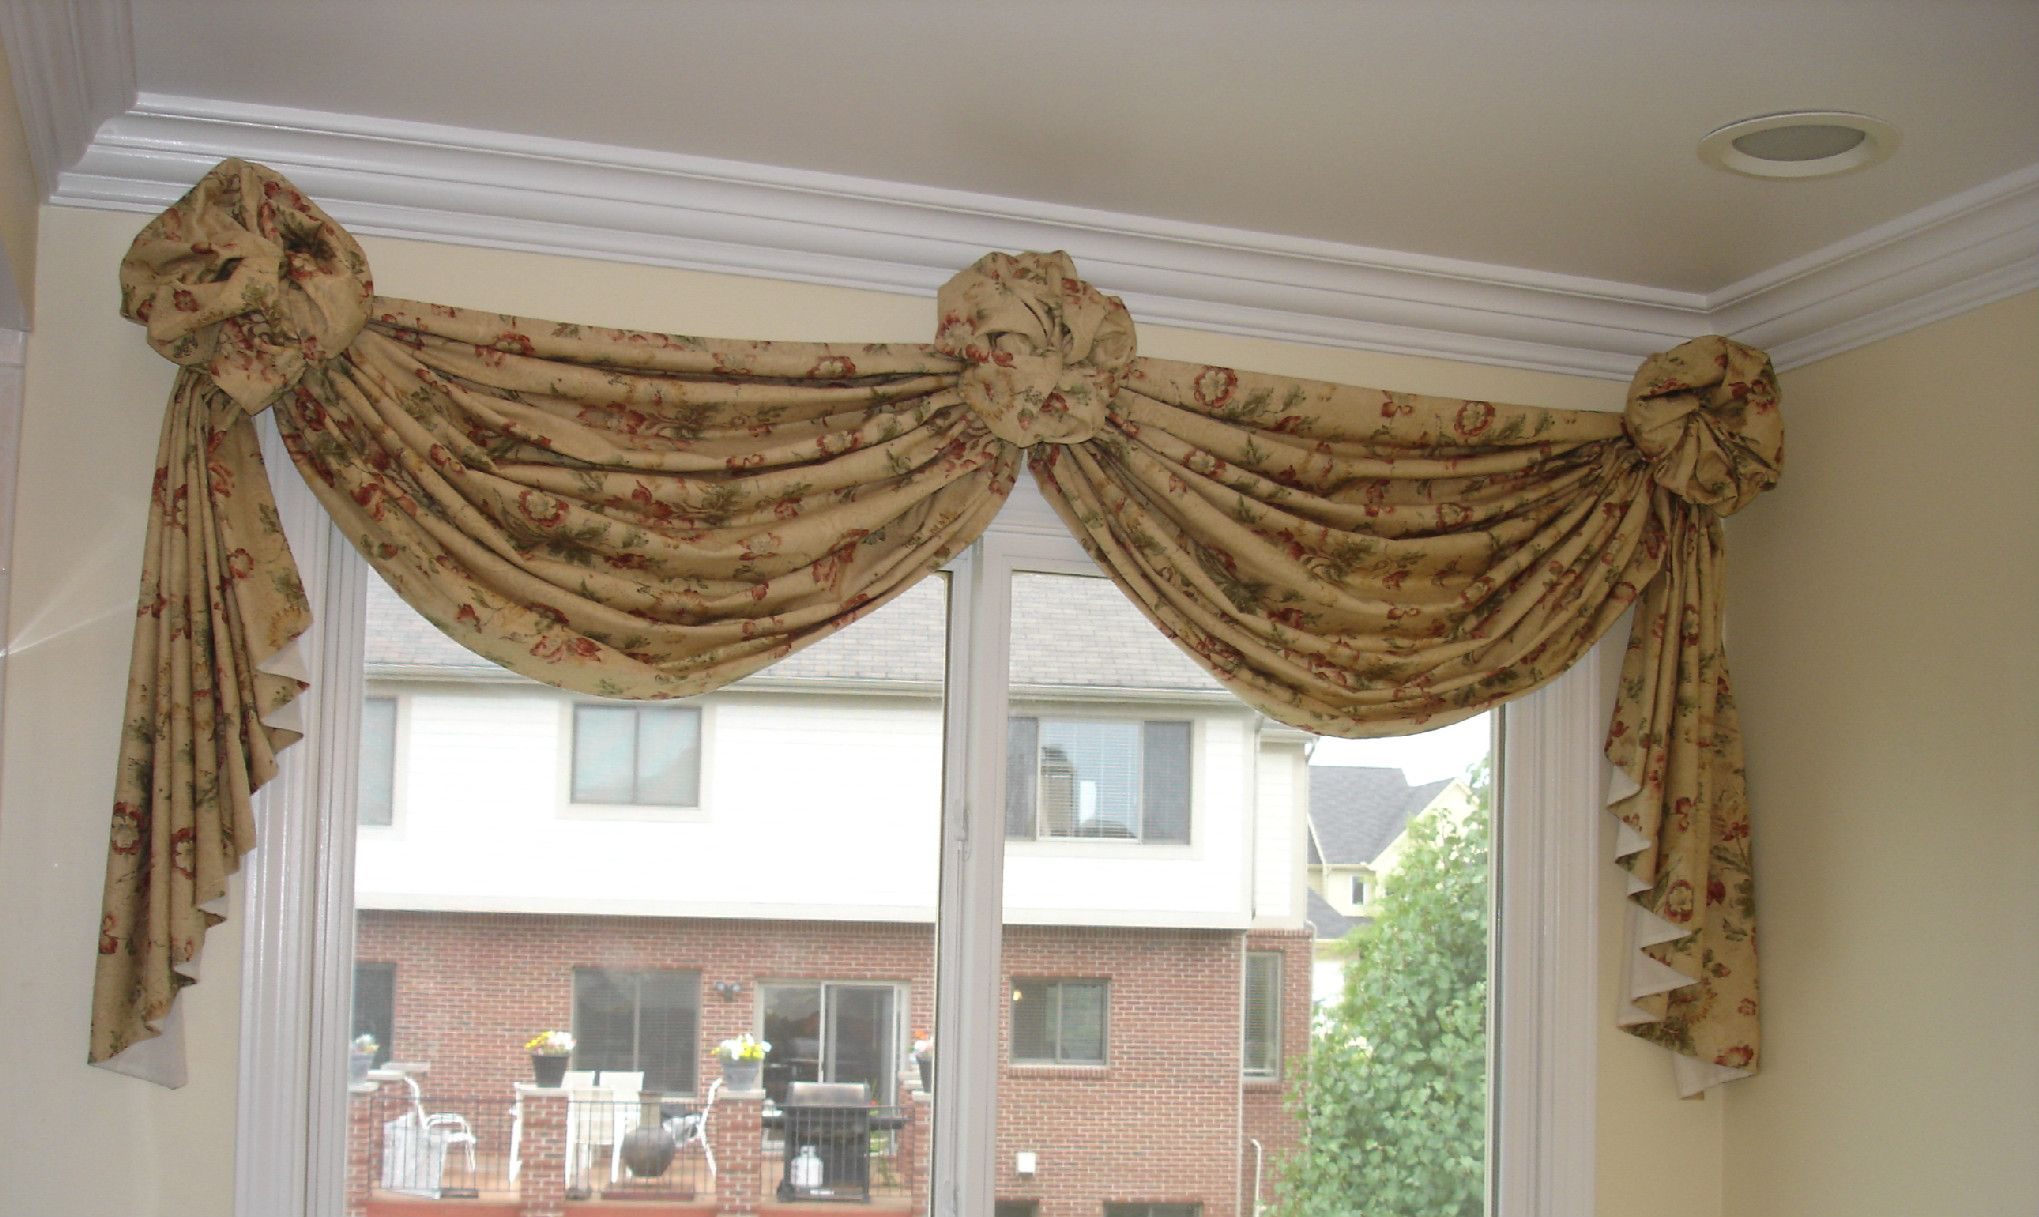 How To Make A Valance With 2 Window Panels